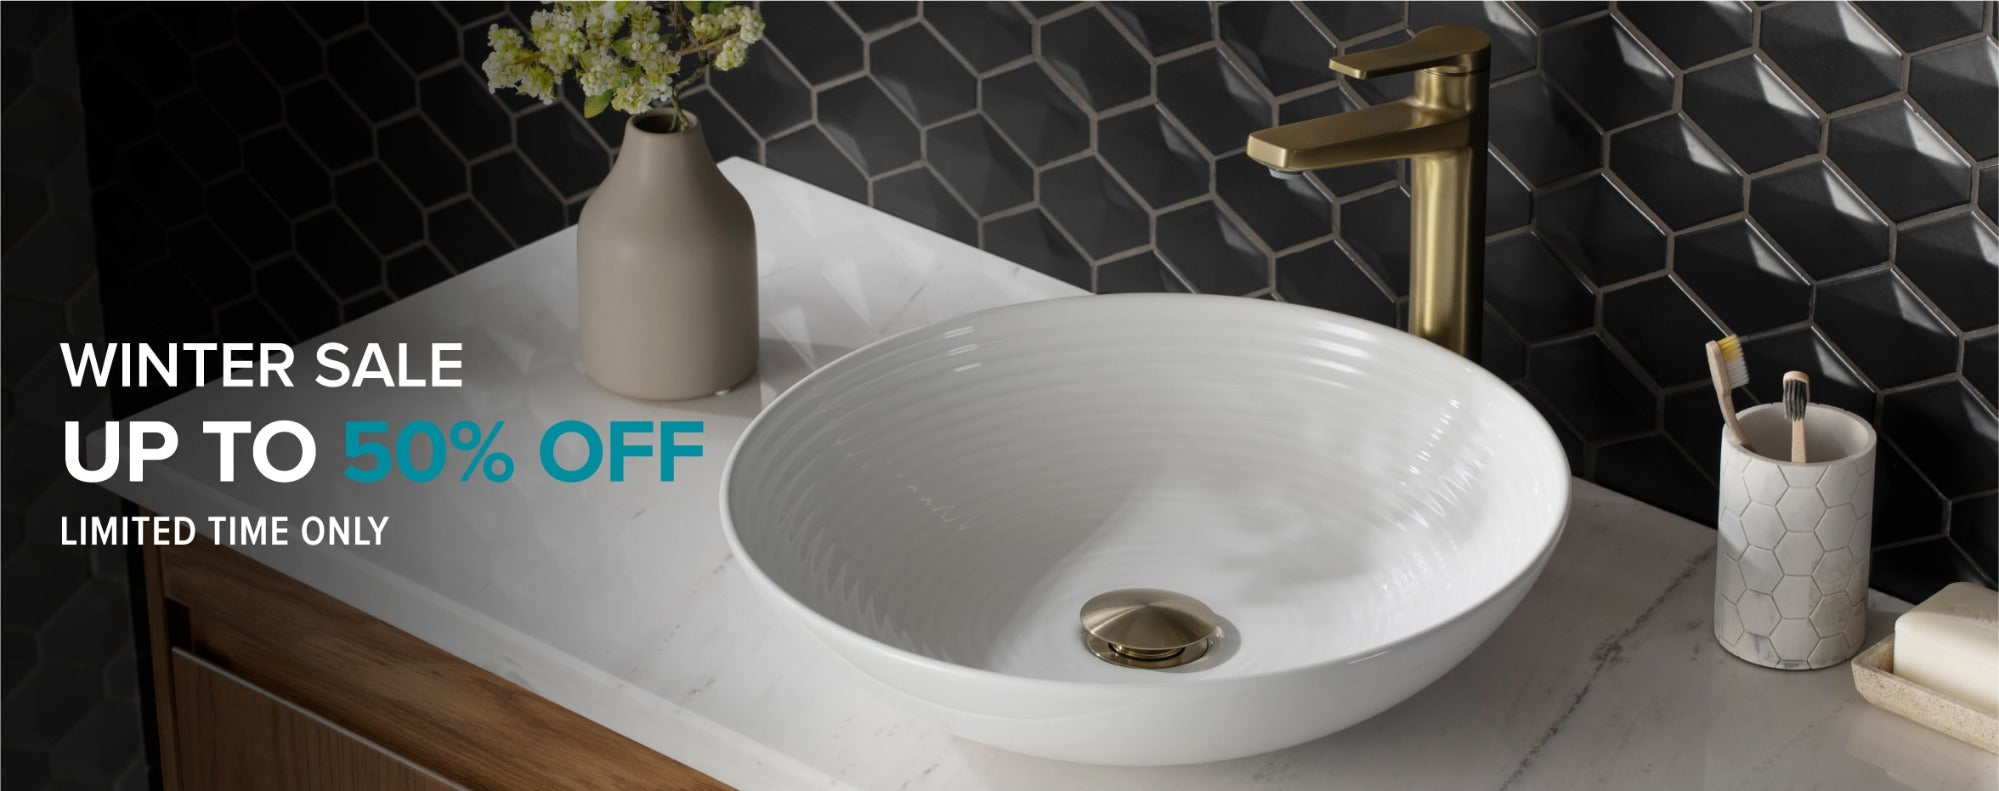 KRAUS Winter Sale on Bathroom Products, up to an additional 50% off